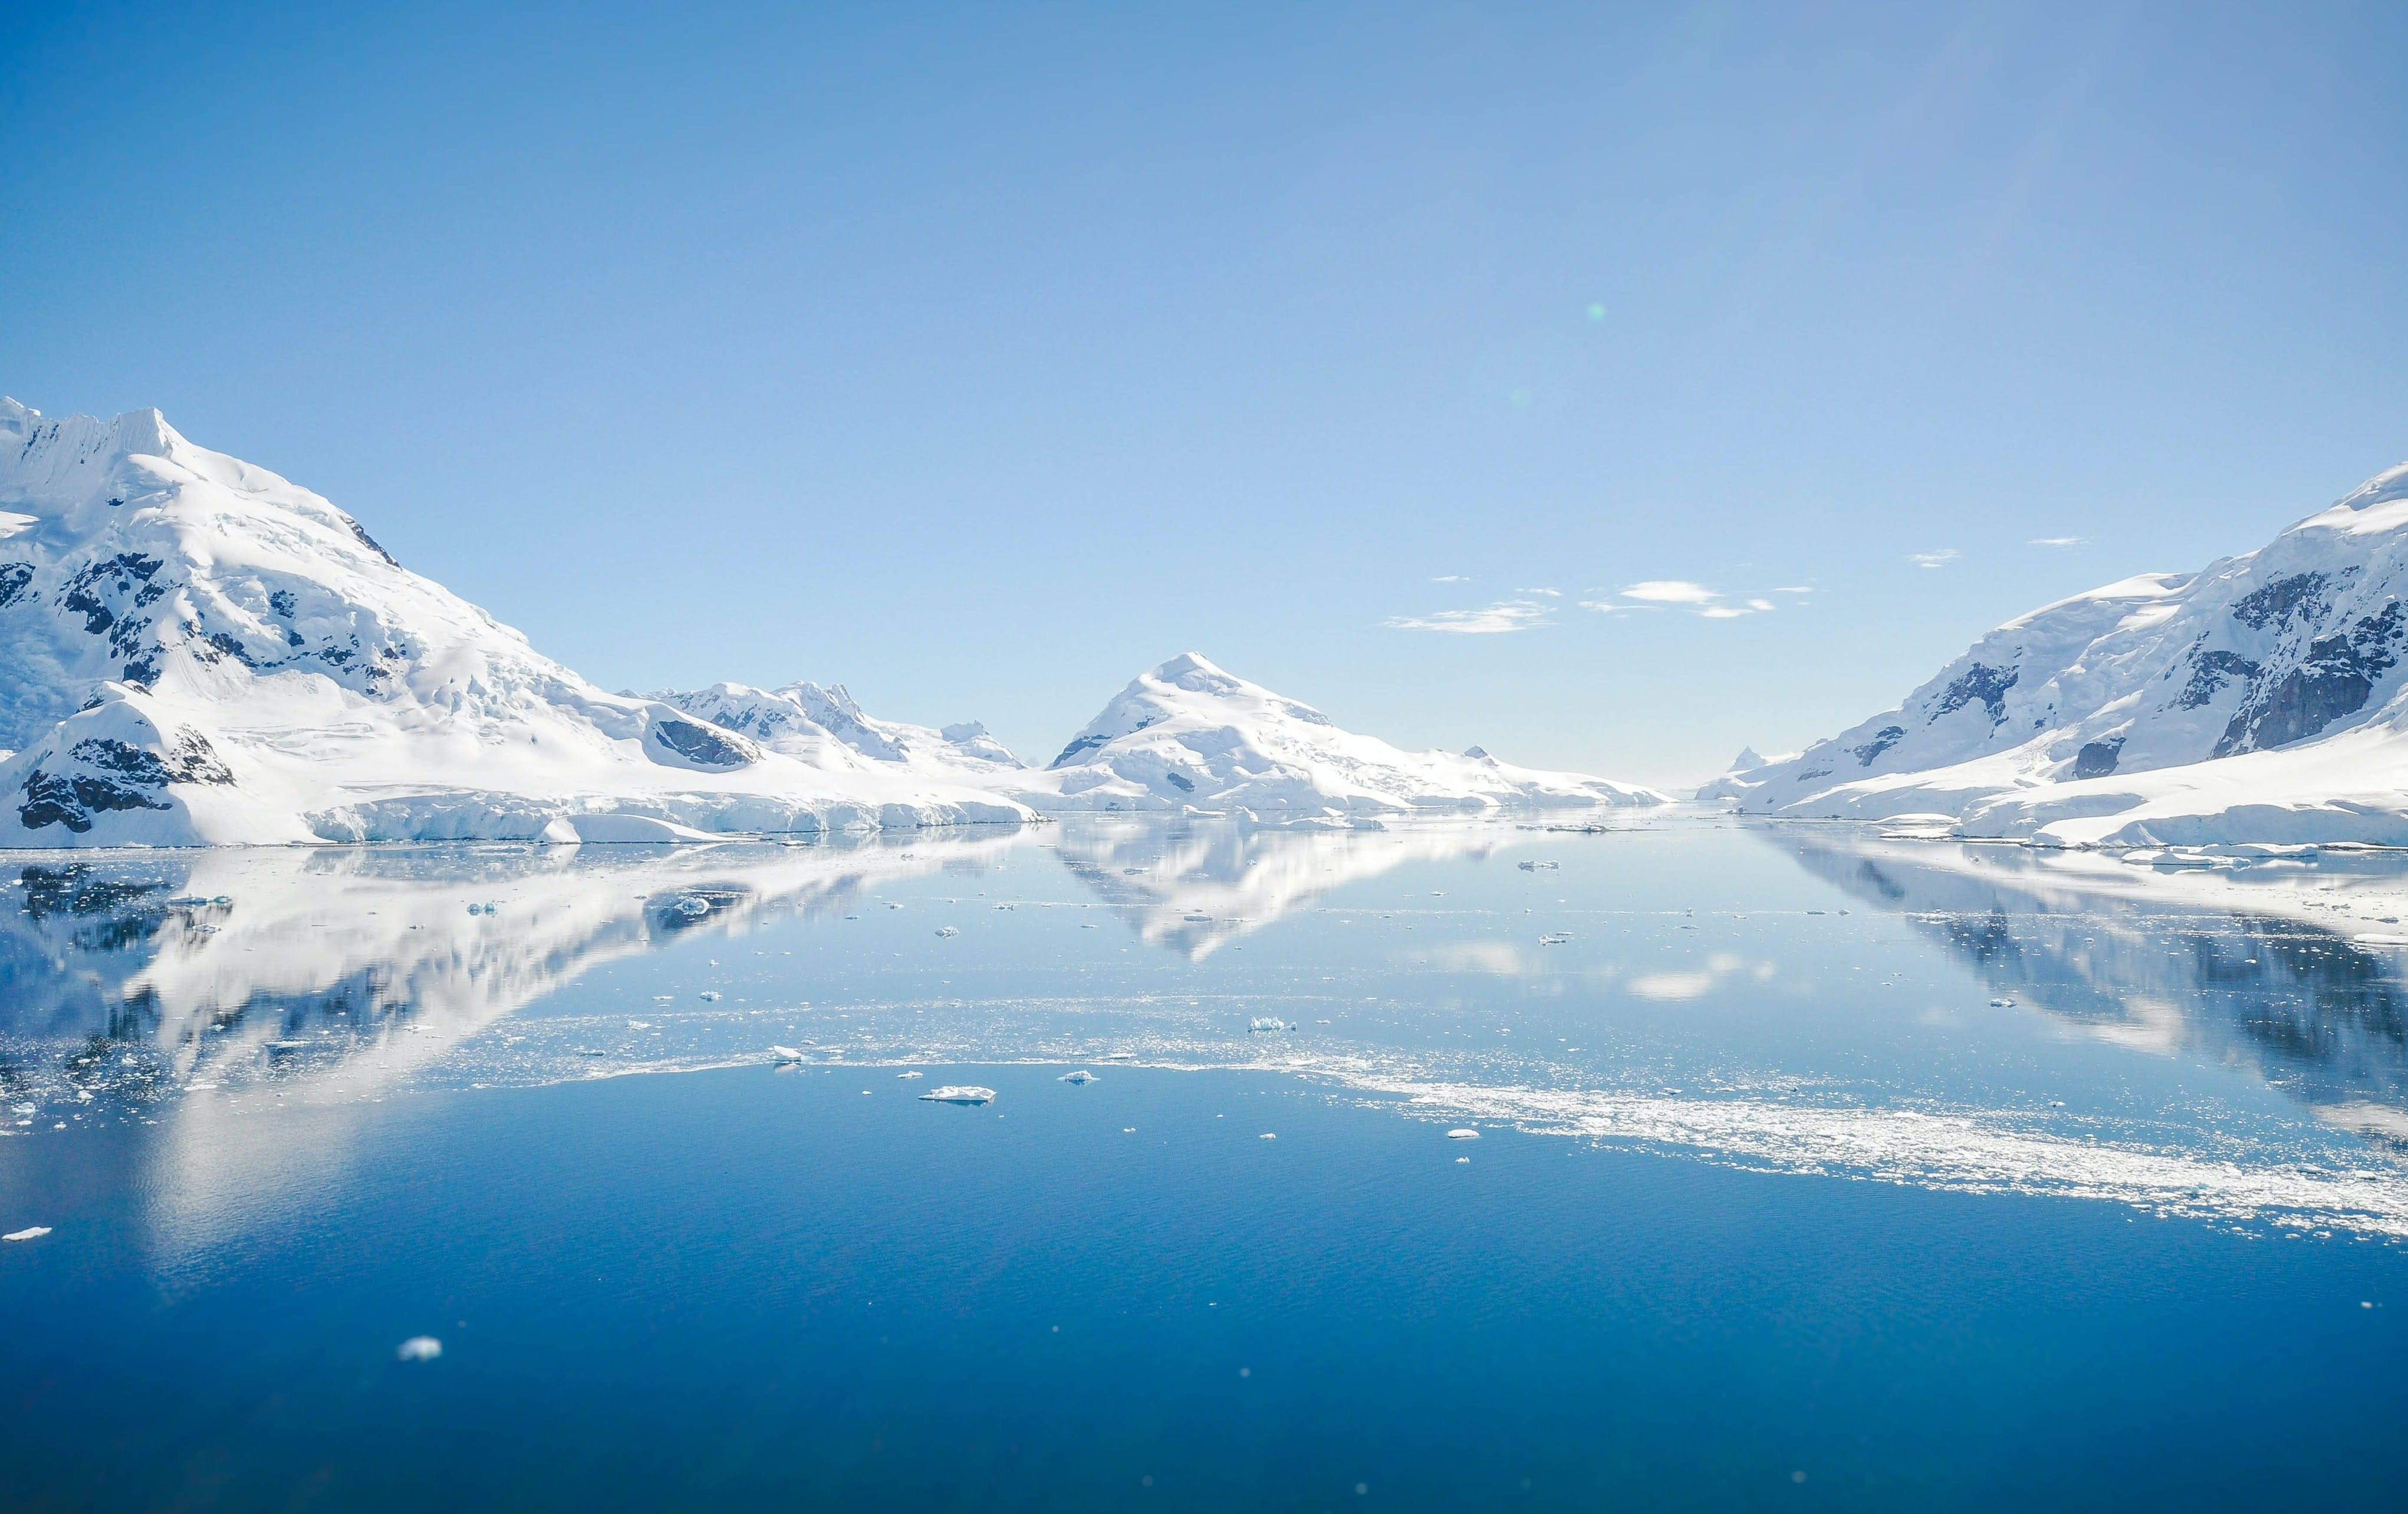 Celebrating international support for Marine Protected Areas Around the Antarctic